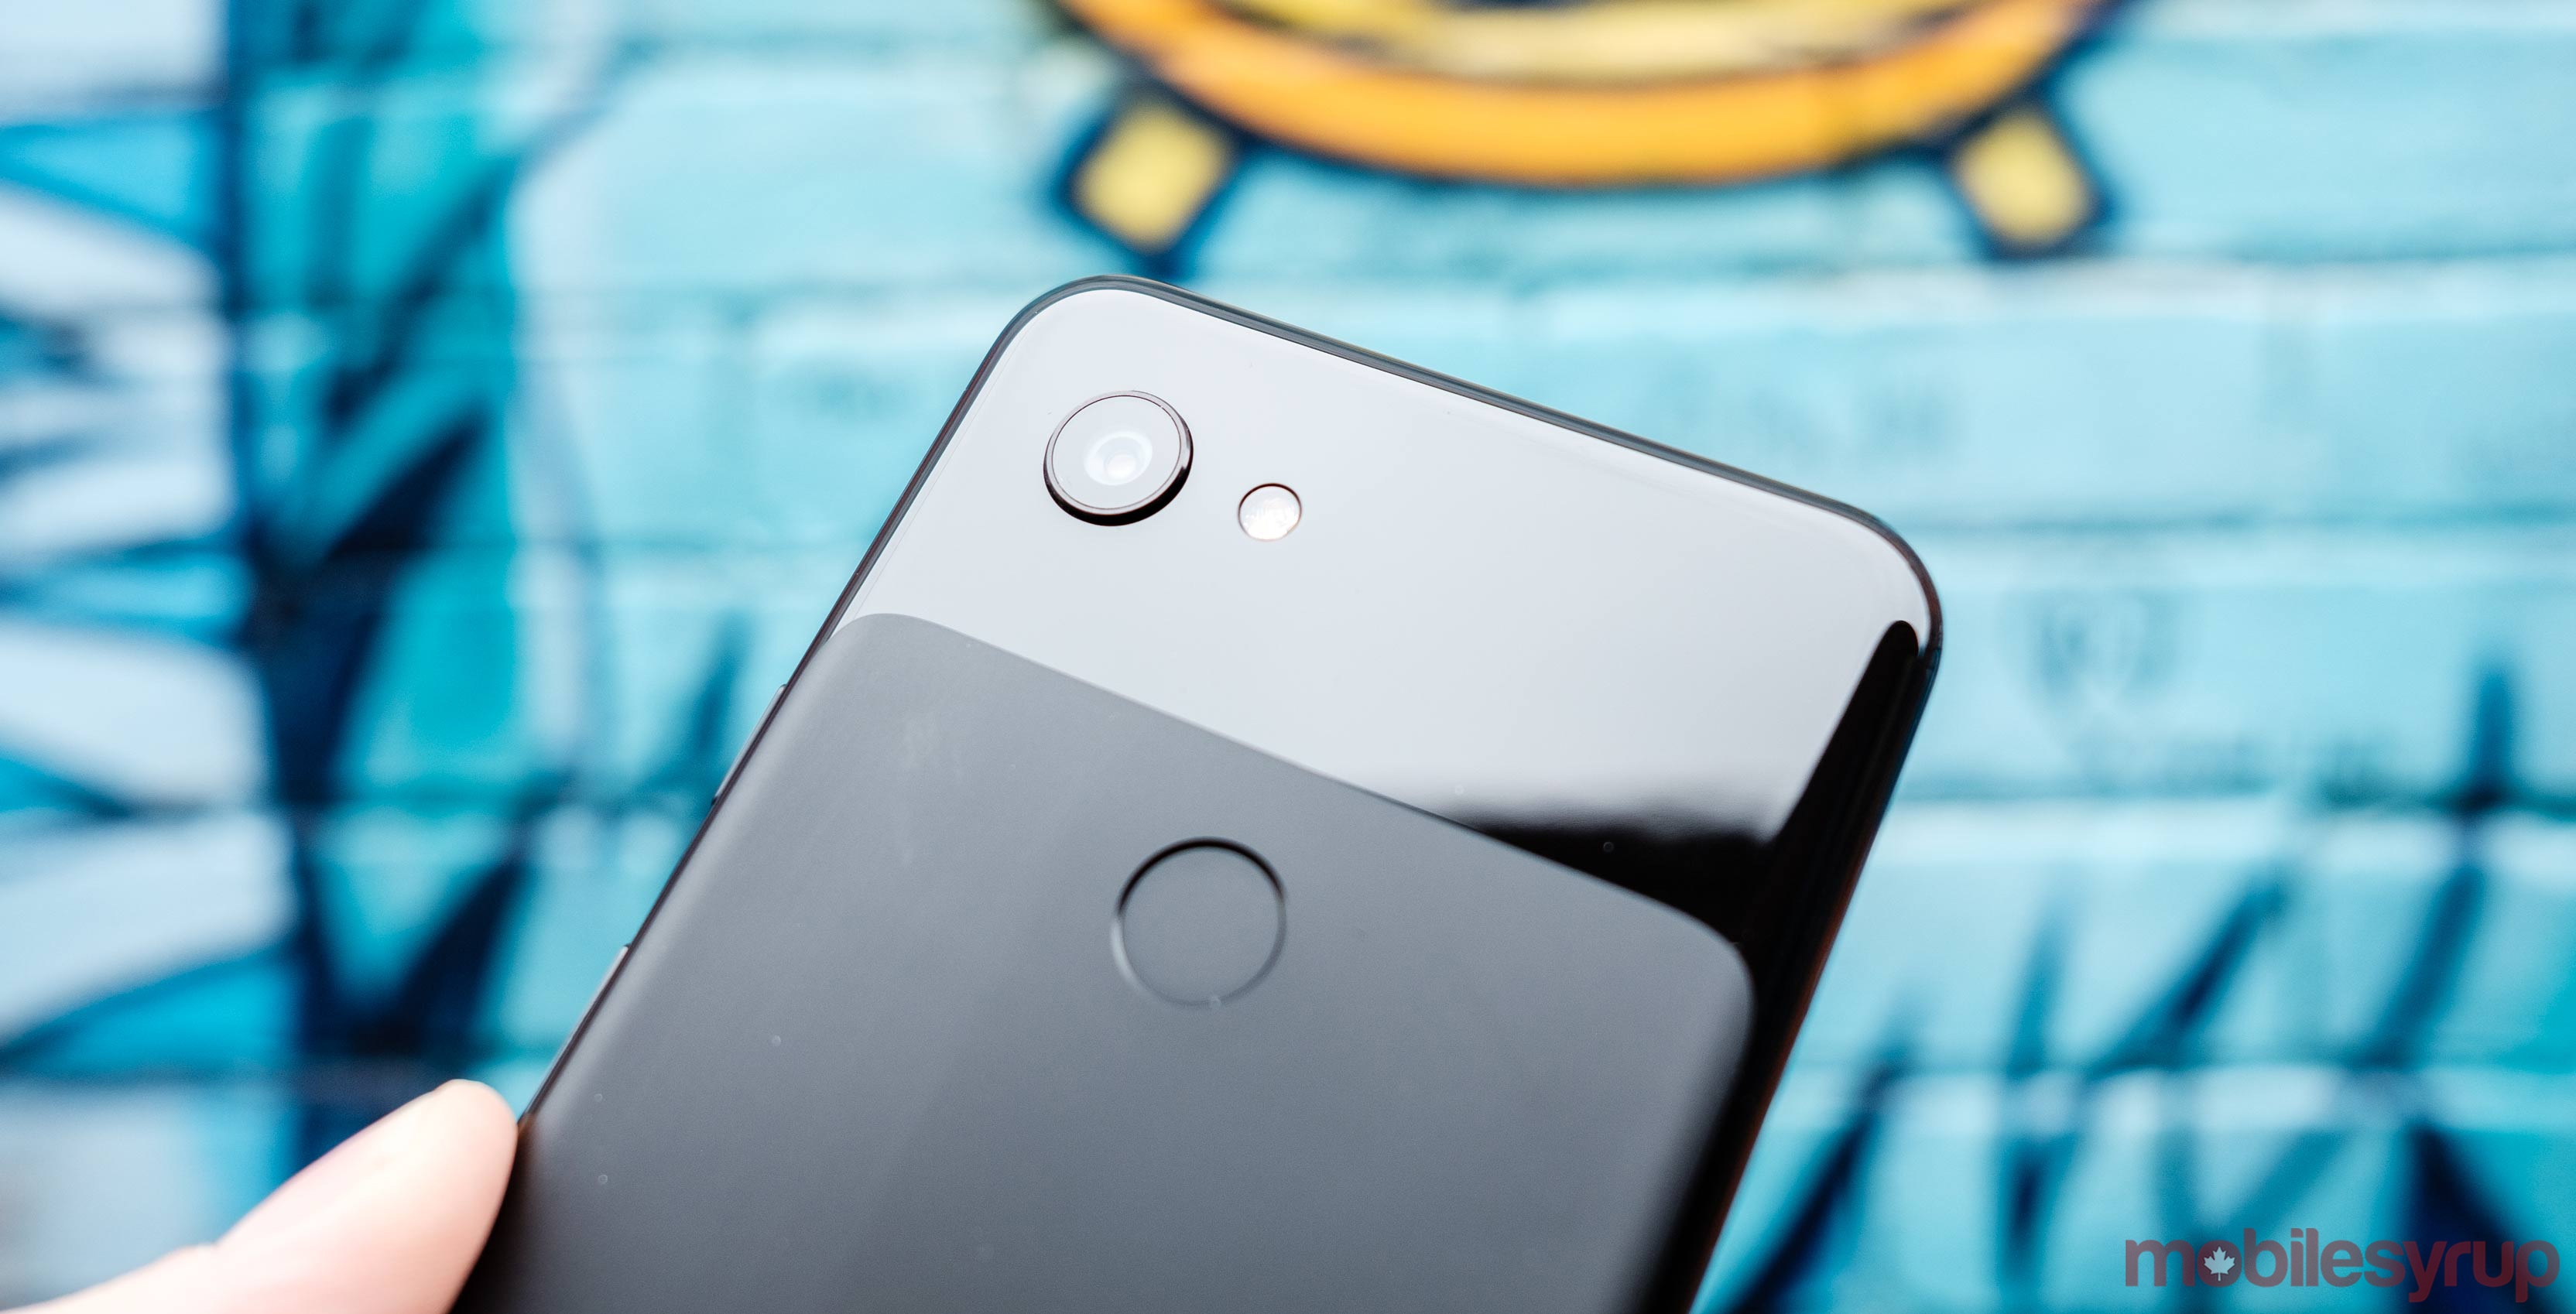 UBreakiFix announces same-day Pixel 3a and Pixel 3a XL repairs